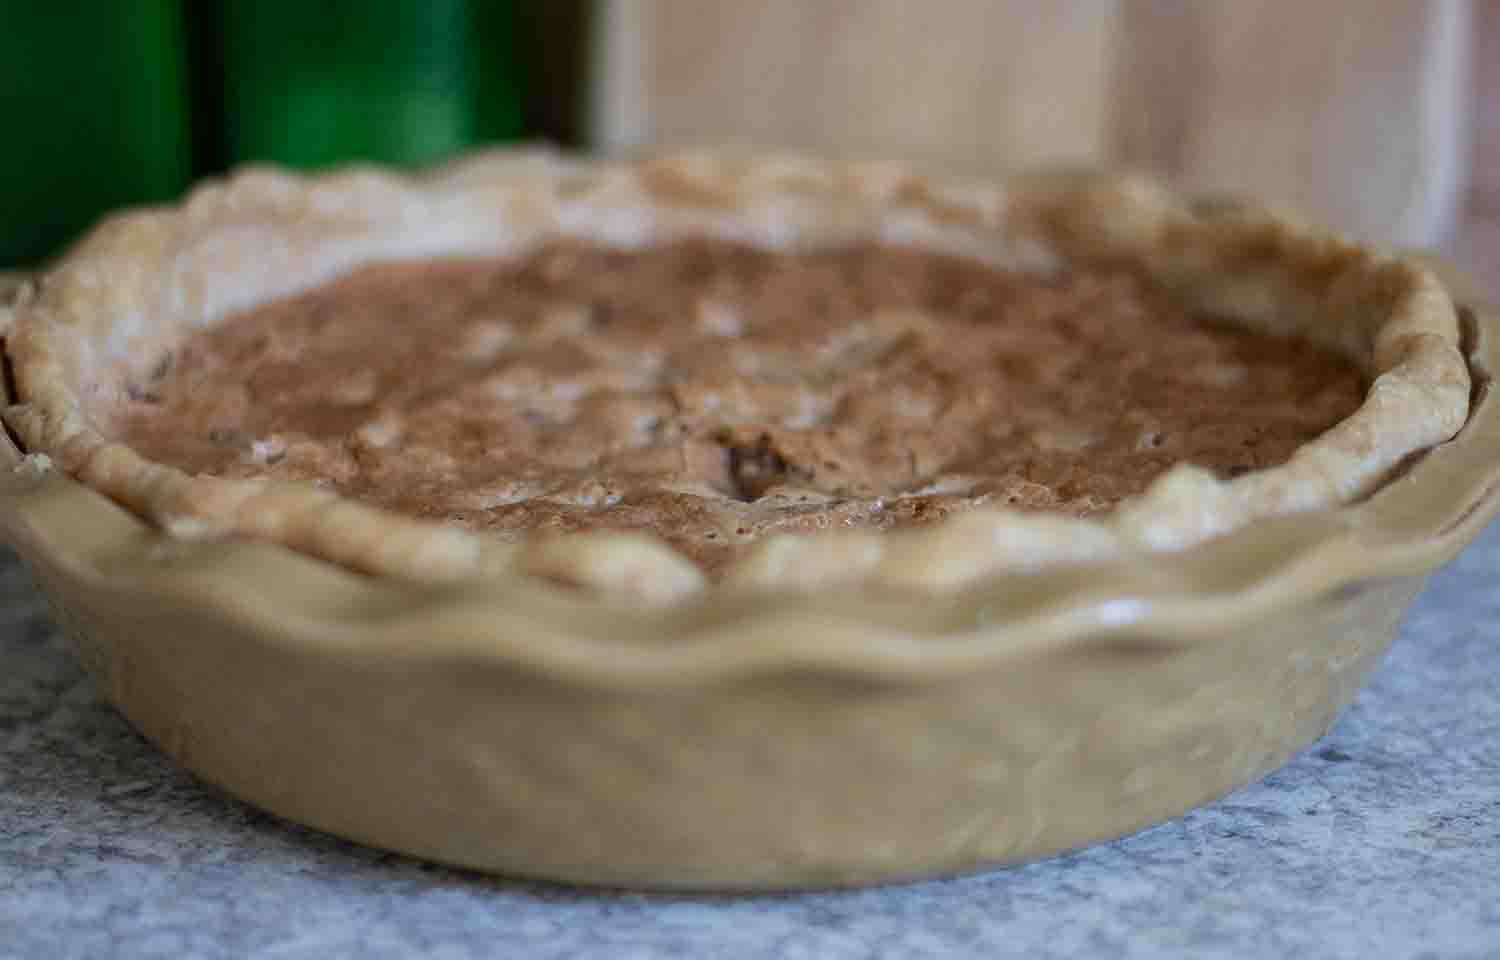 this week's bake – toll house chocolate chip pie